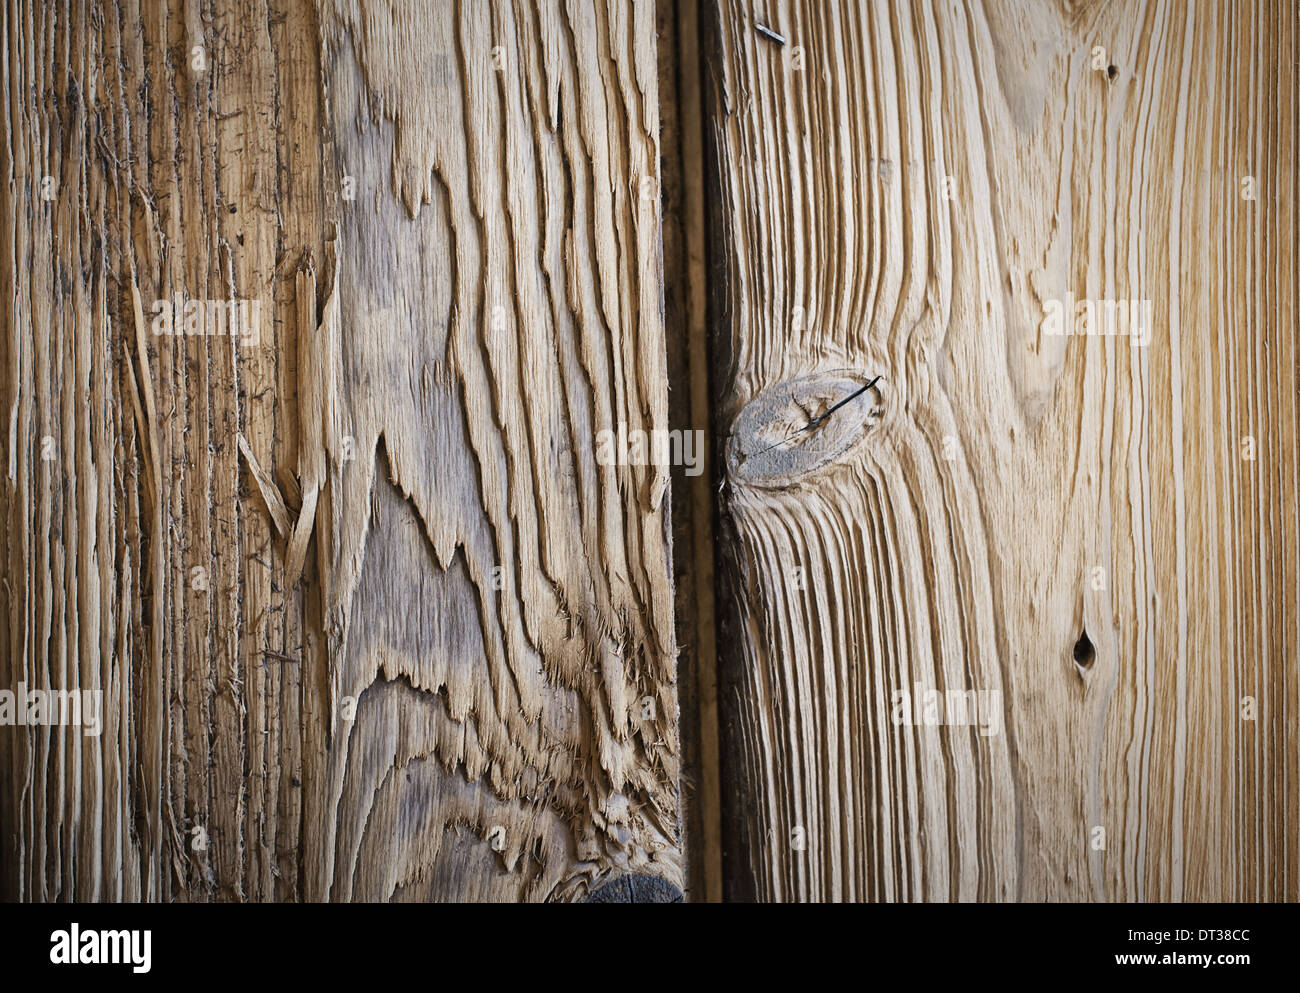 A reclaimed lumber workshop. Close up of two planks of wood, with knots and wood grain patterns. - Stock Image